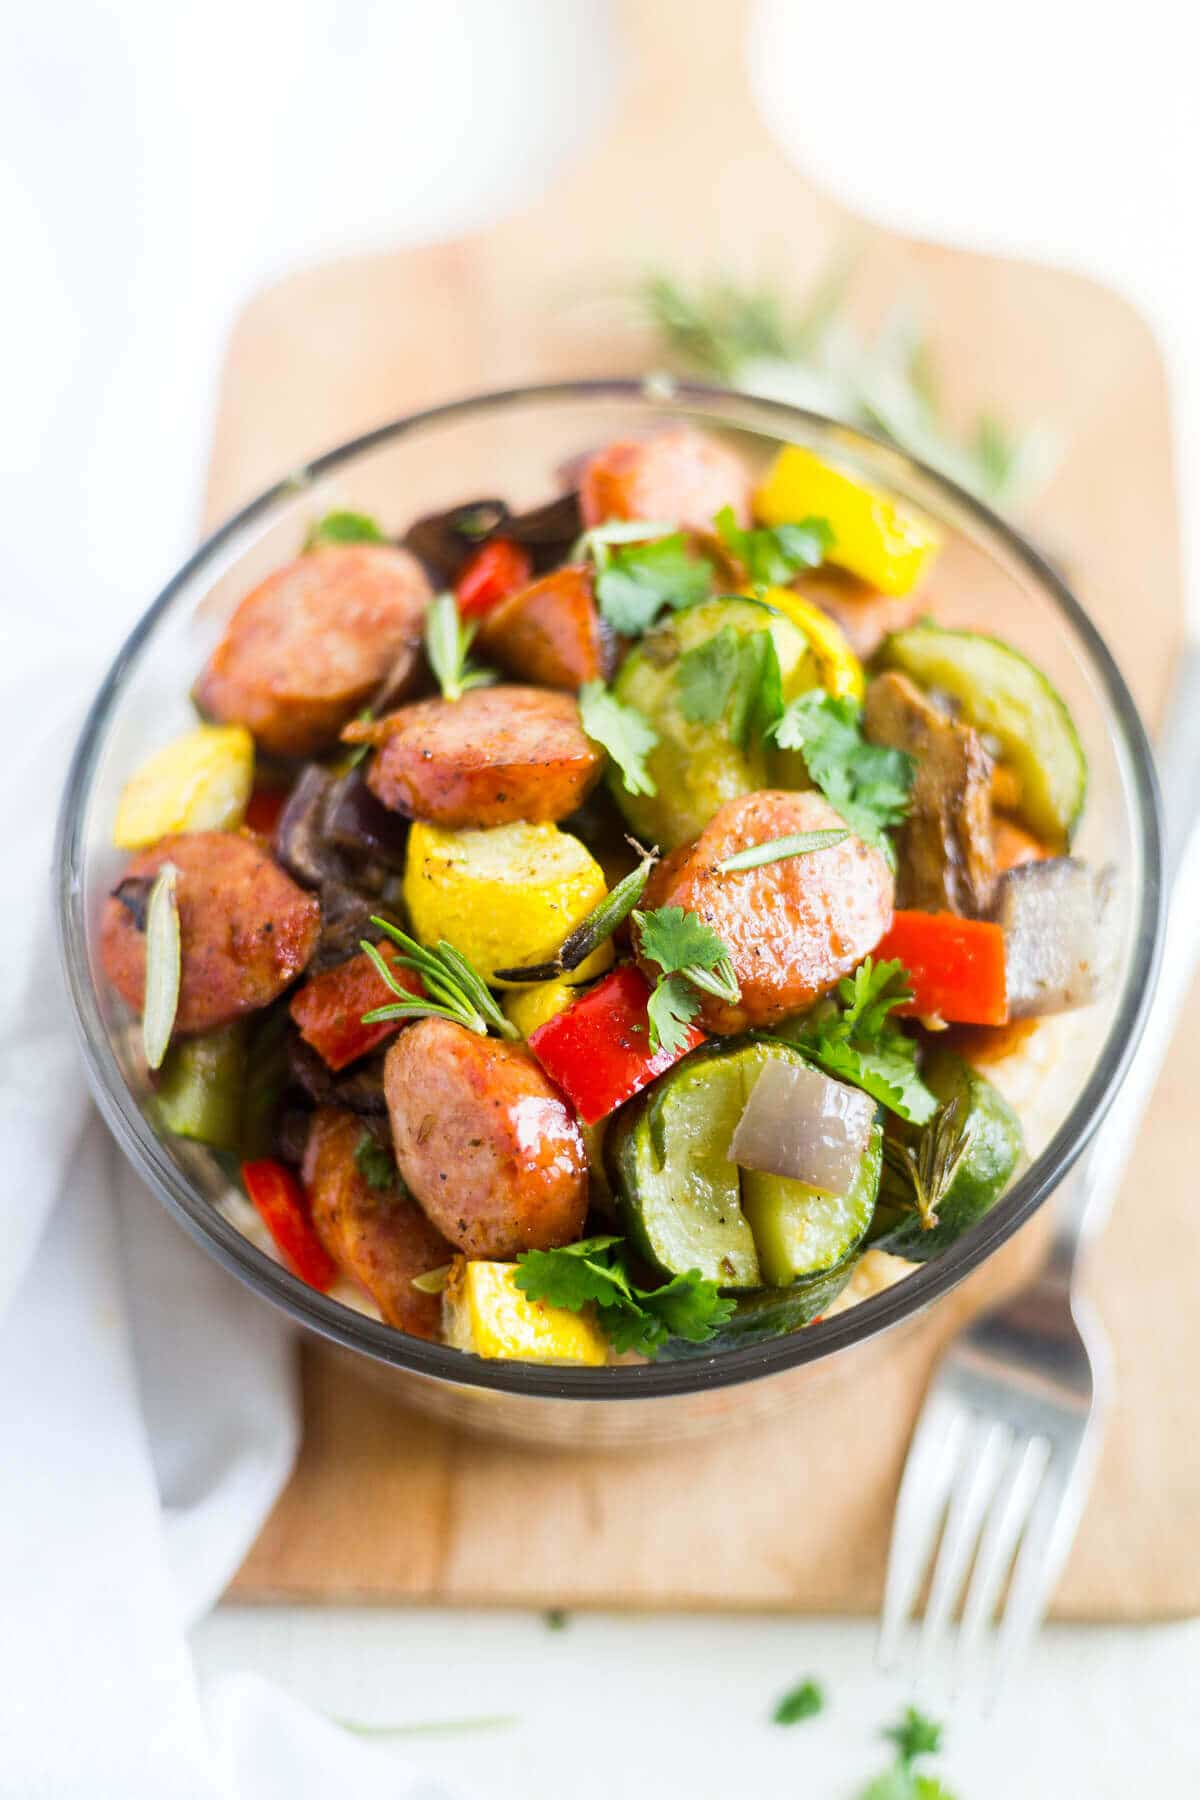 roasted sausage and veggies in a meal prep bowl topped with parsley